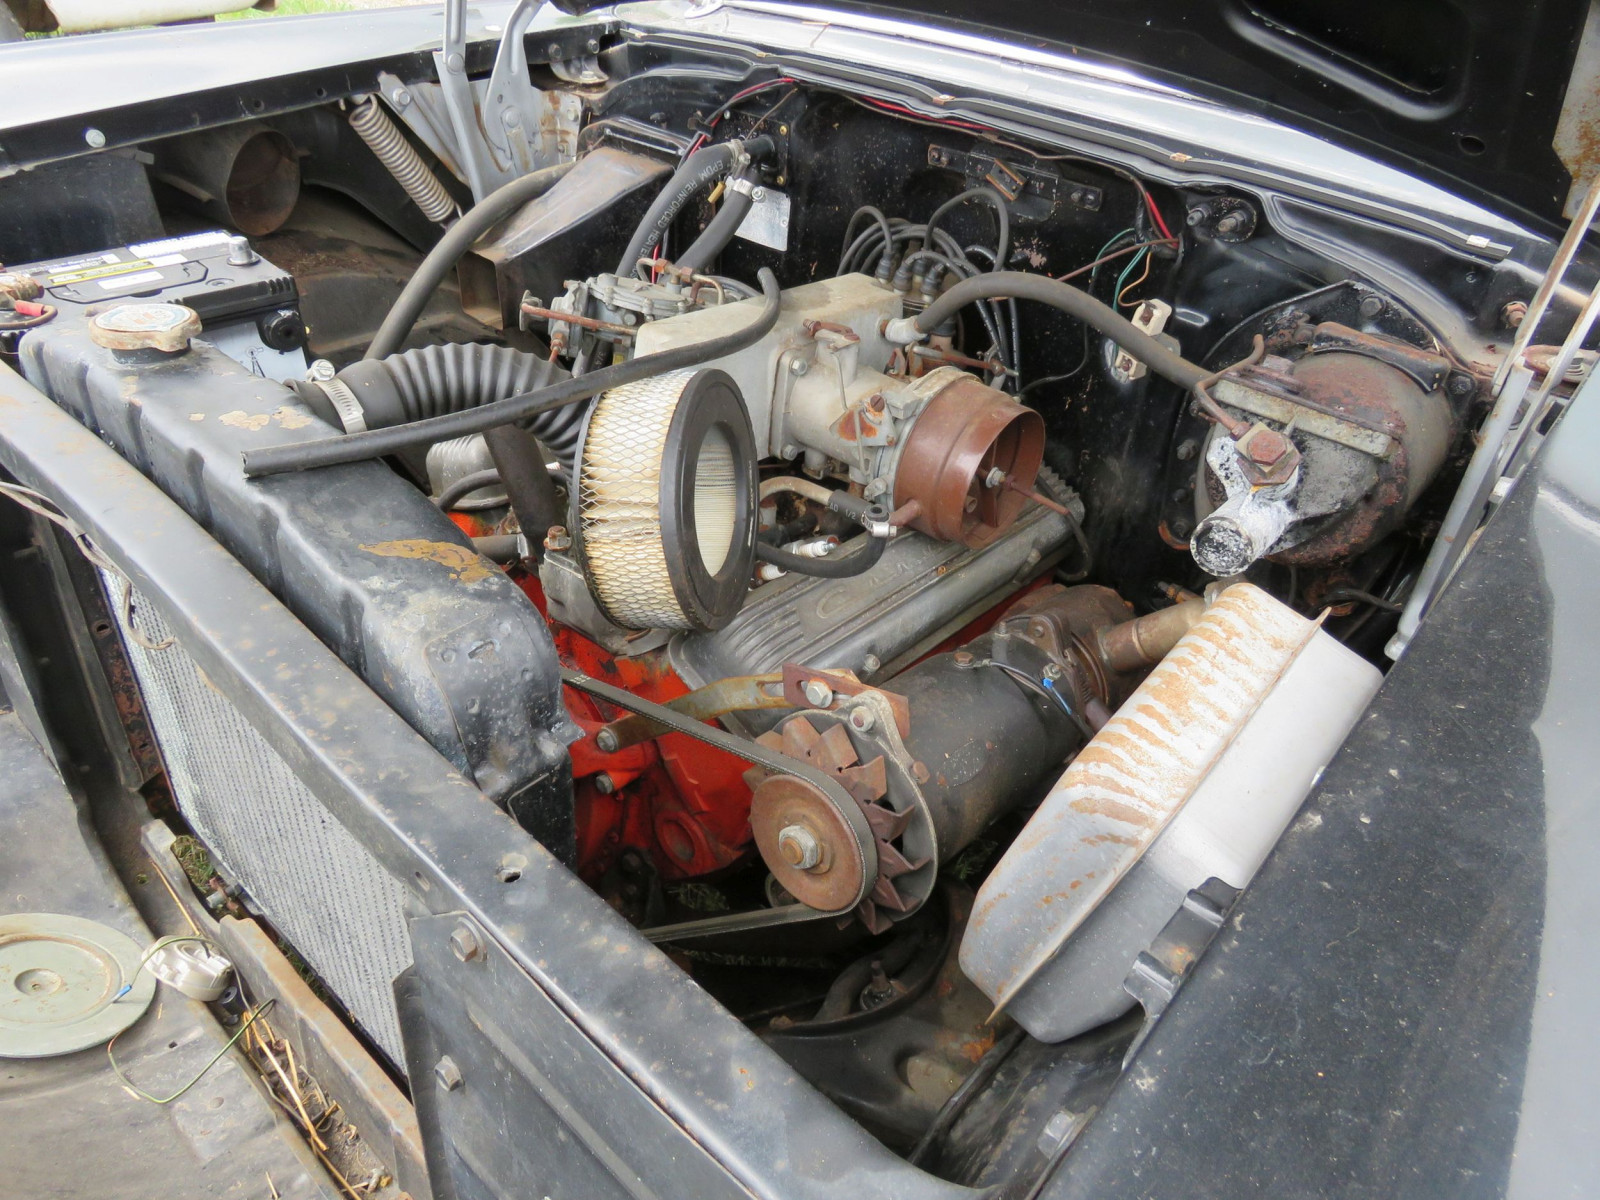 1957 Chevrolet Belair Fuel Injected 2dr HT - Image 12